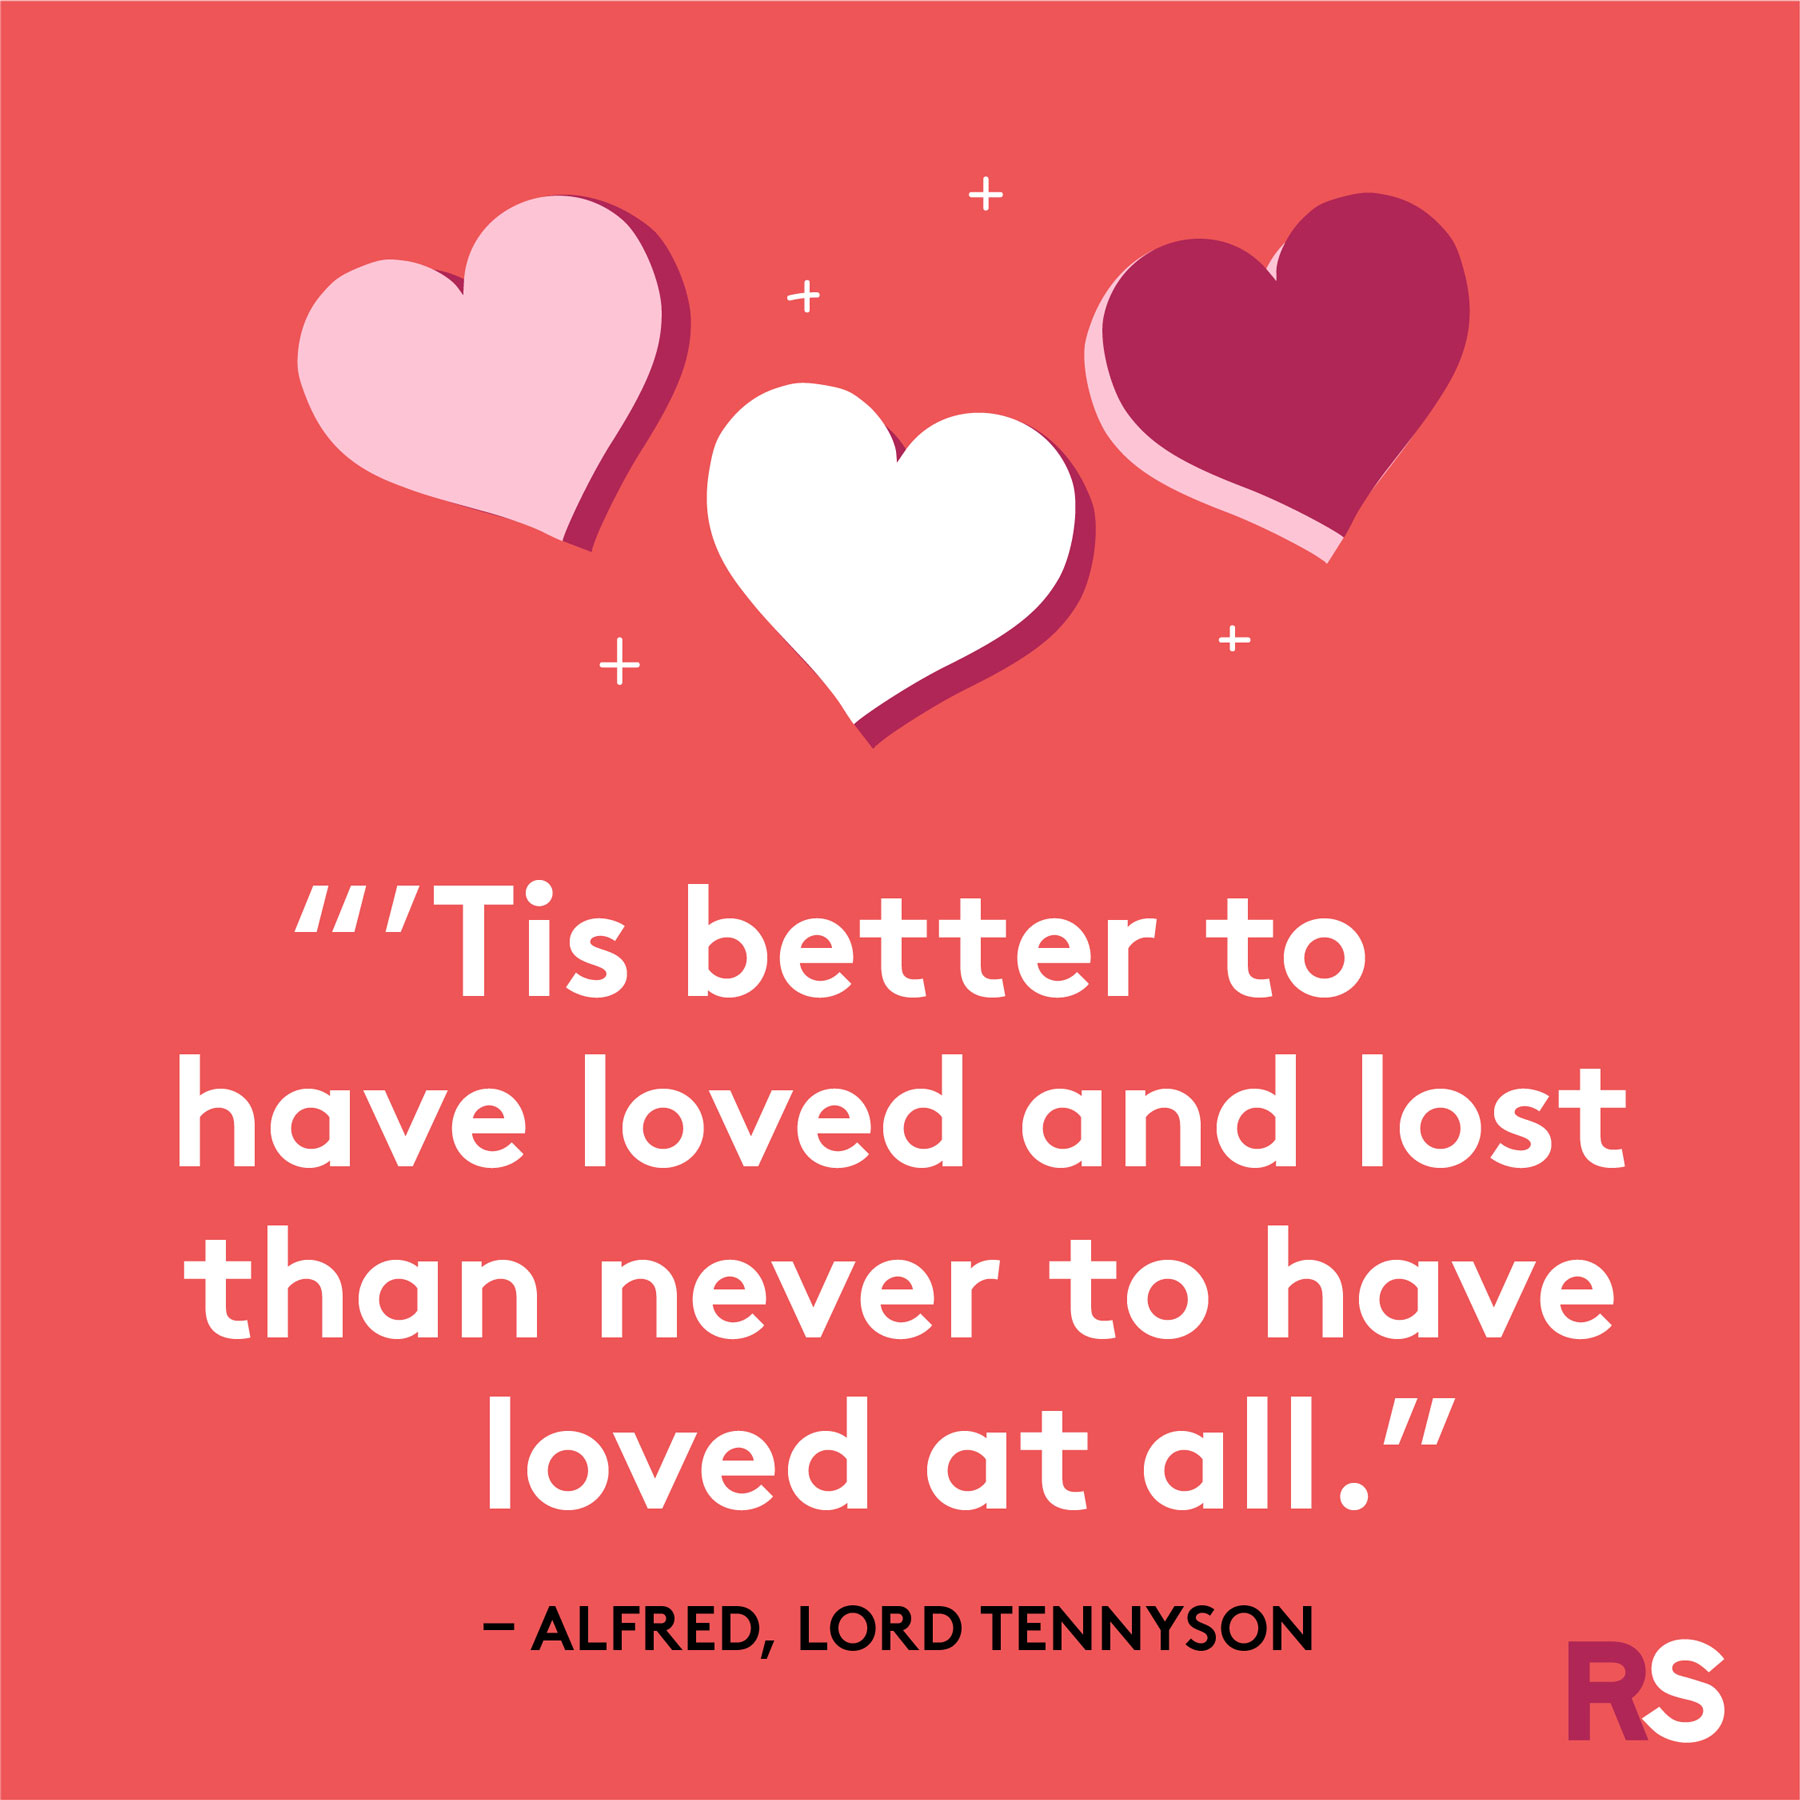 Love quotes, quotes about love - Alfred, Lord Tennyson